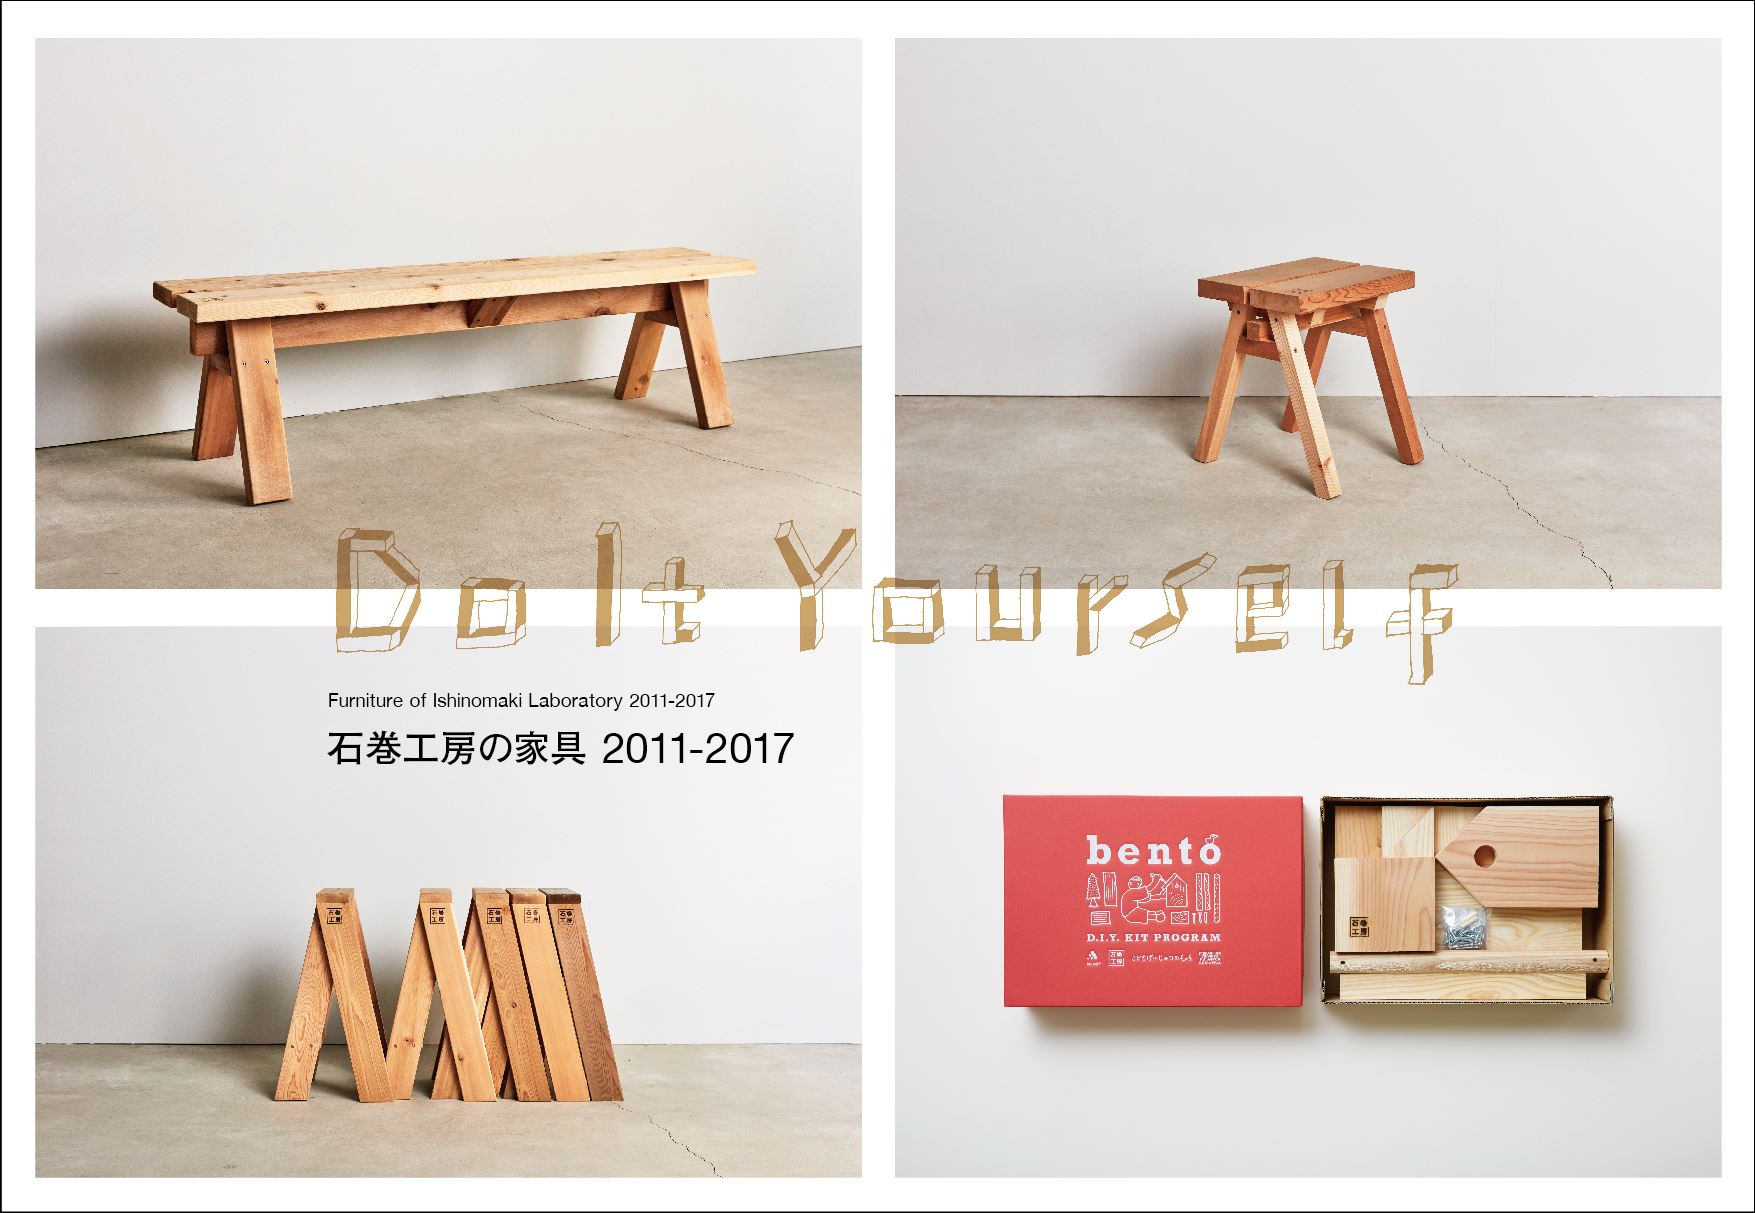 4 15 5 21 do it yourself 石巻工房の家具 2011 2017 開催 山形